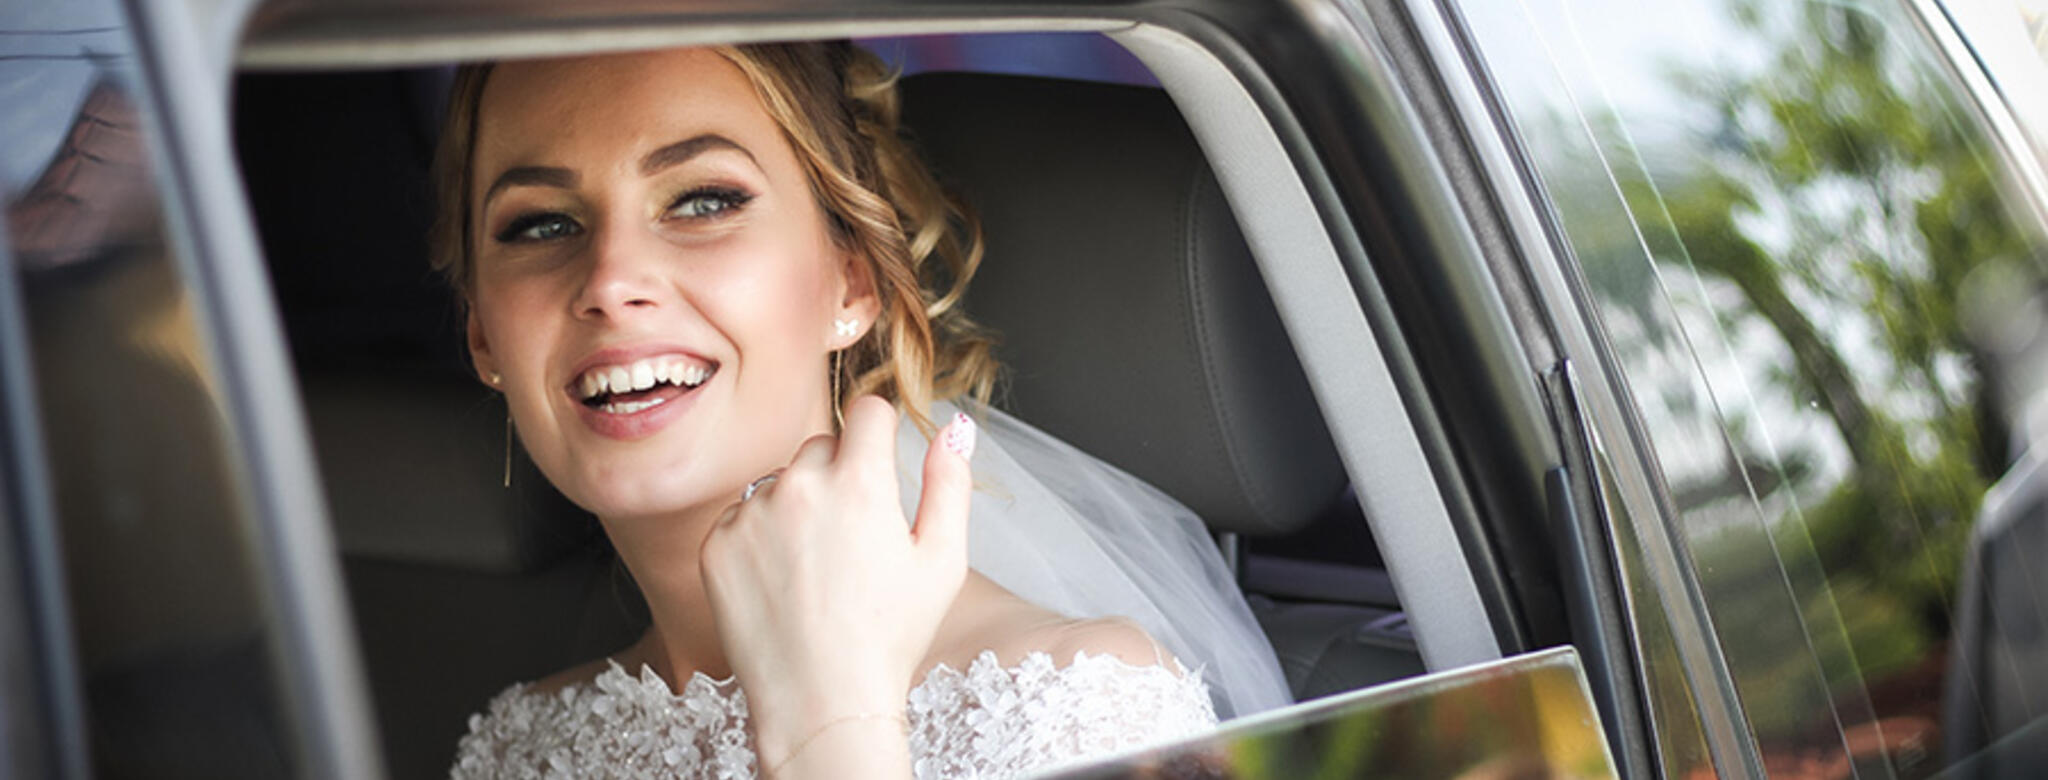 Bride smiling in car window